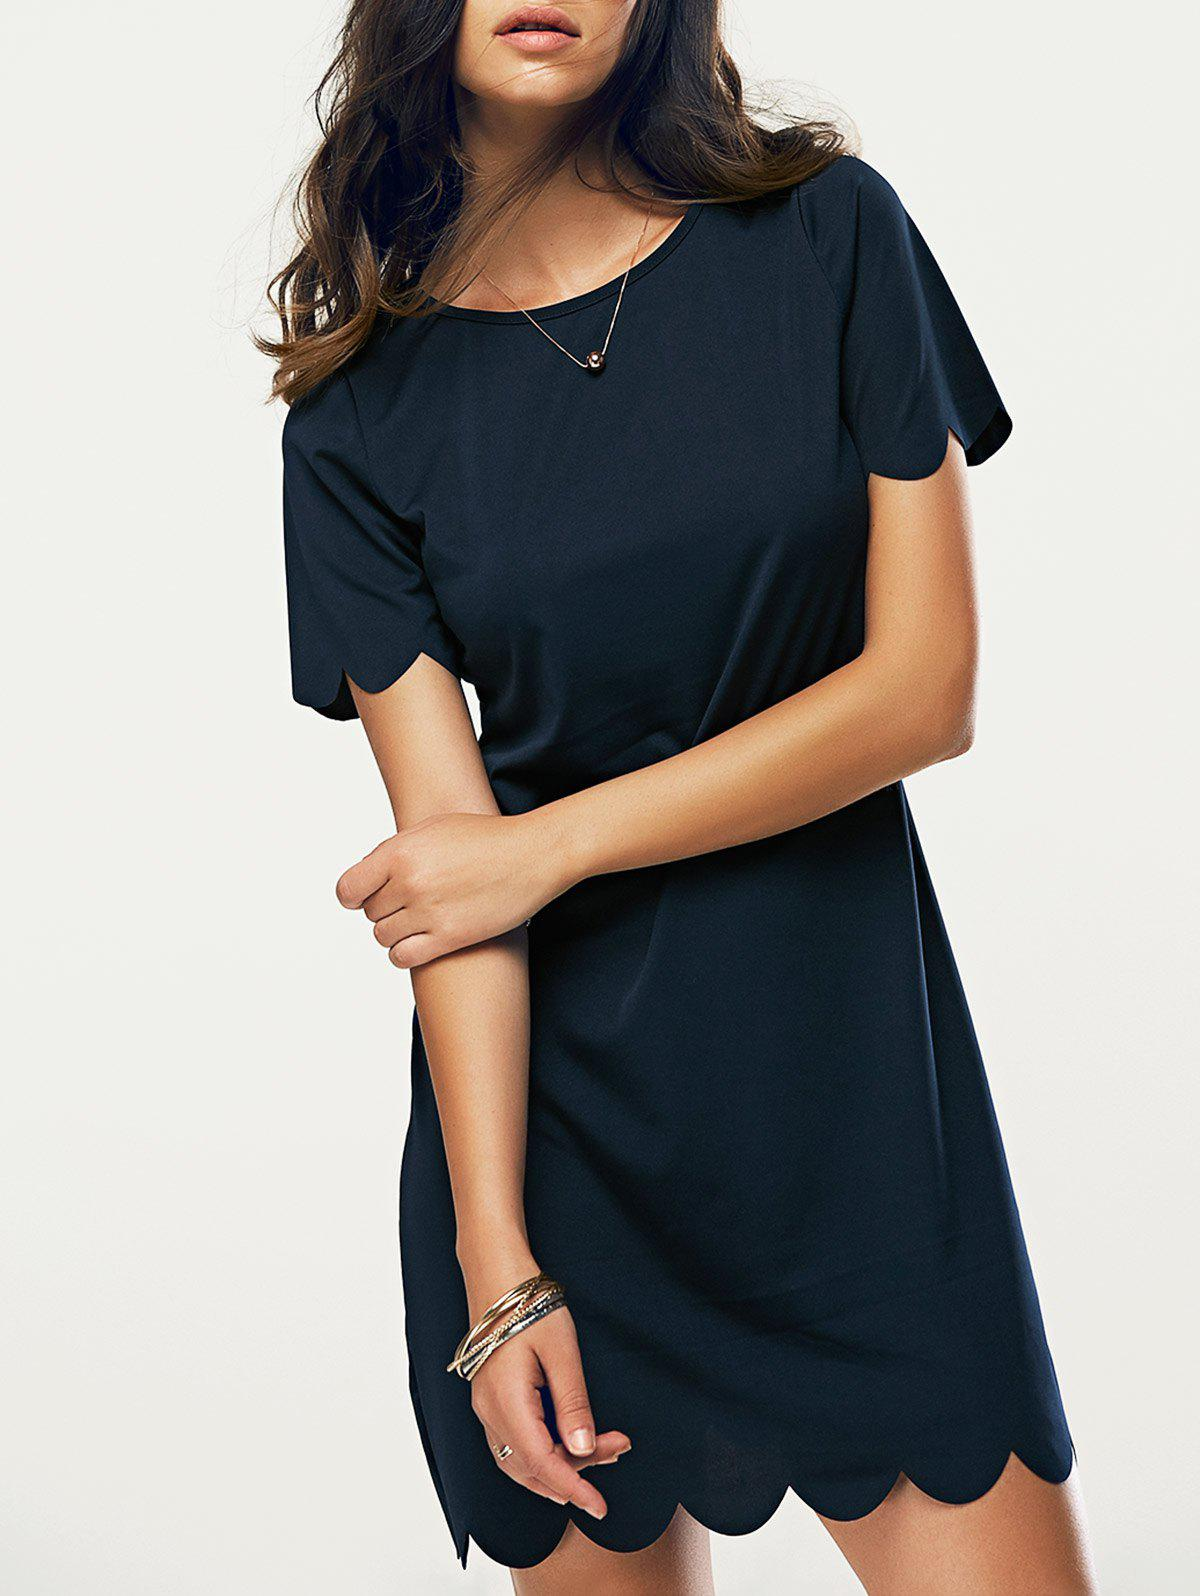 Casual Round Neck Short Sleeve Women's Dress - PURPLISH BLUE XL